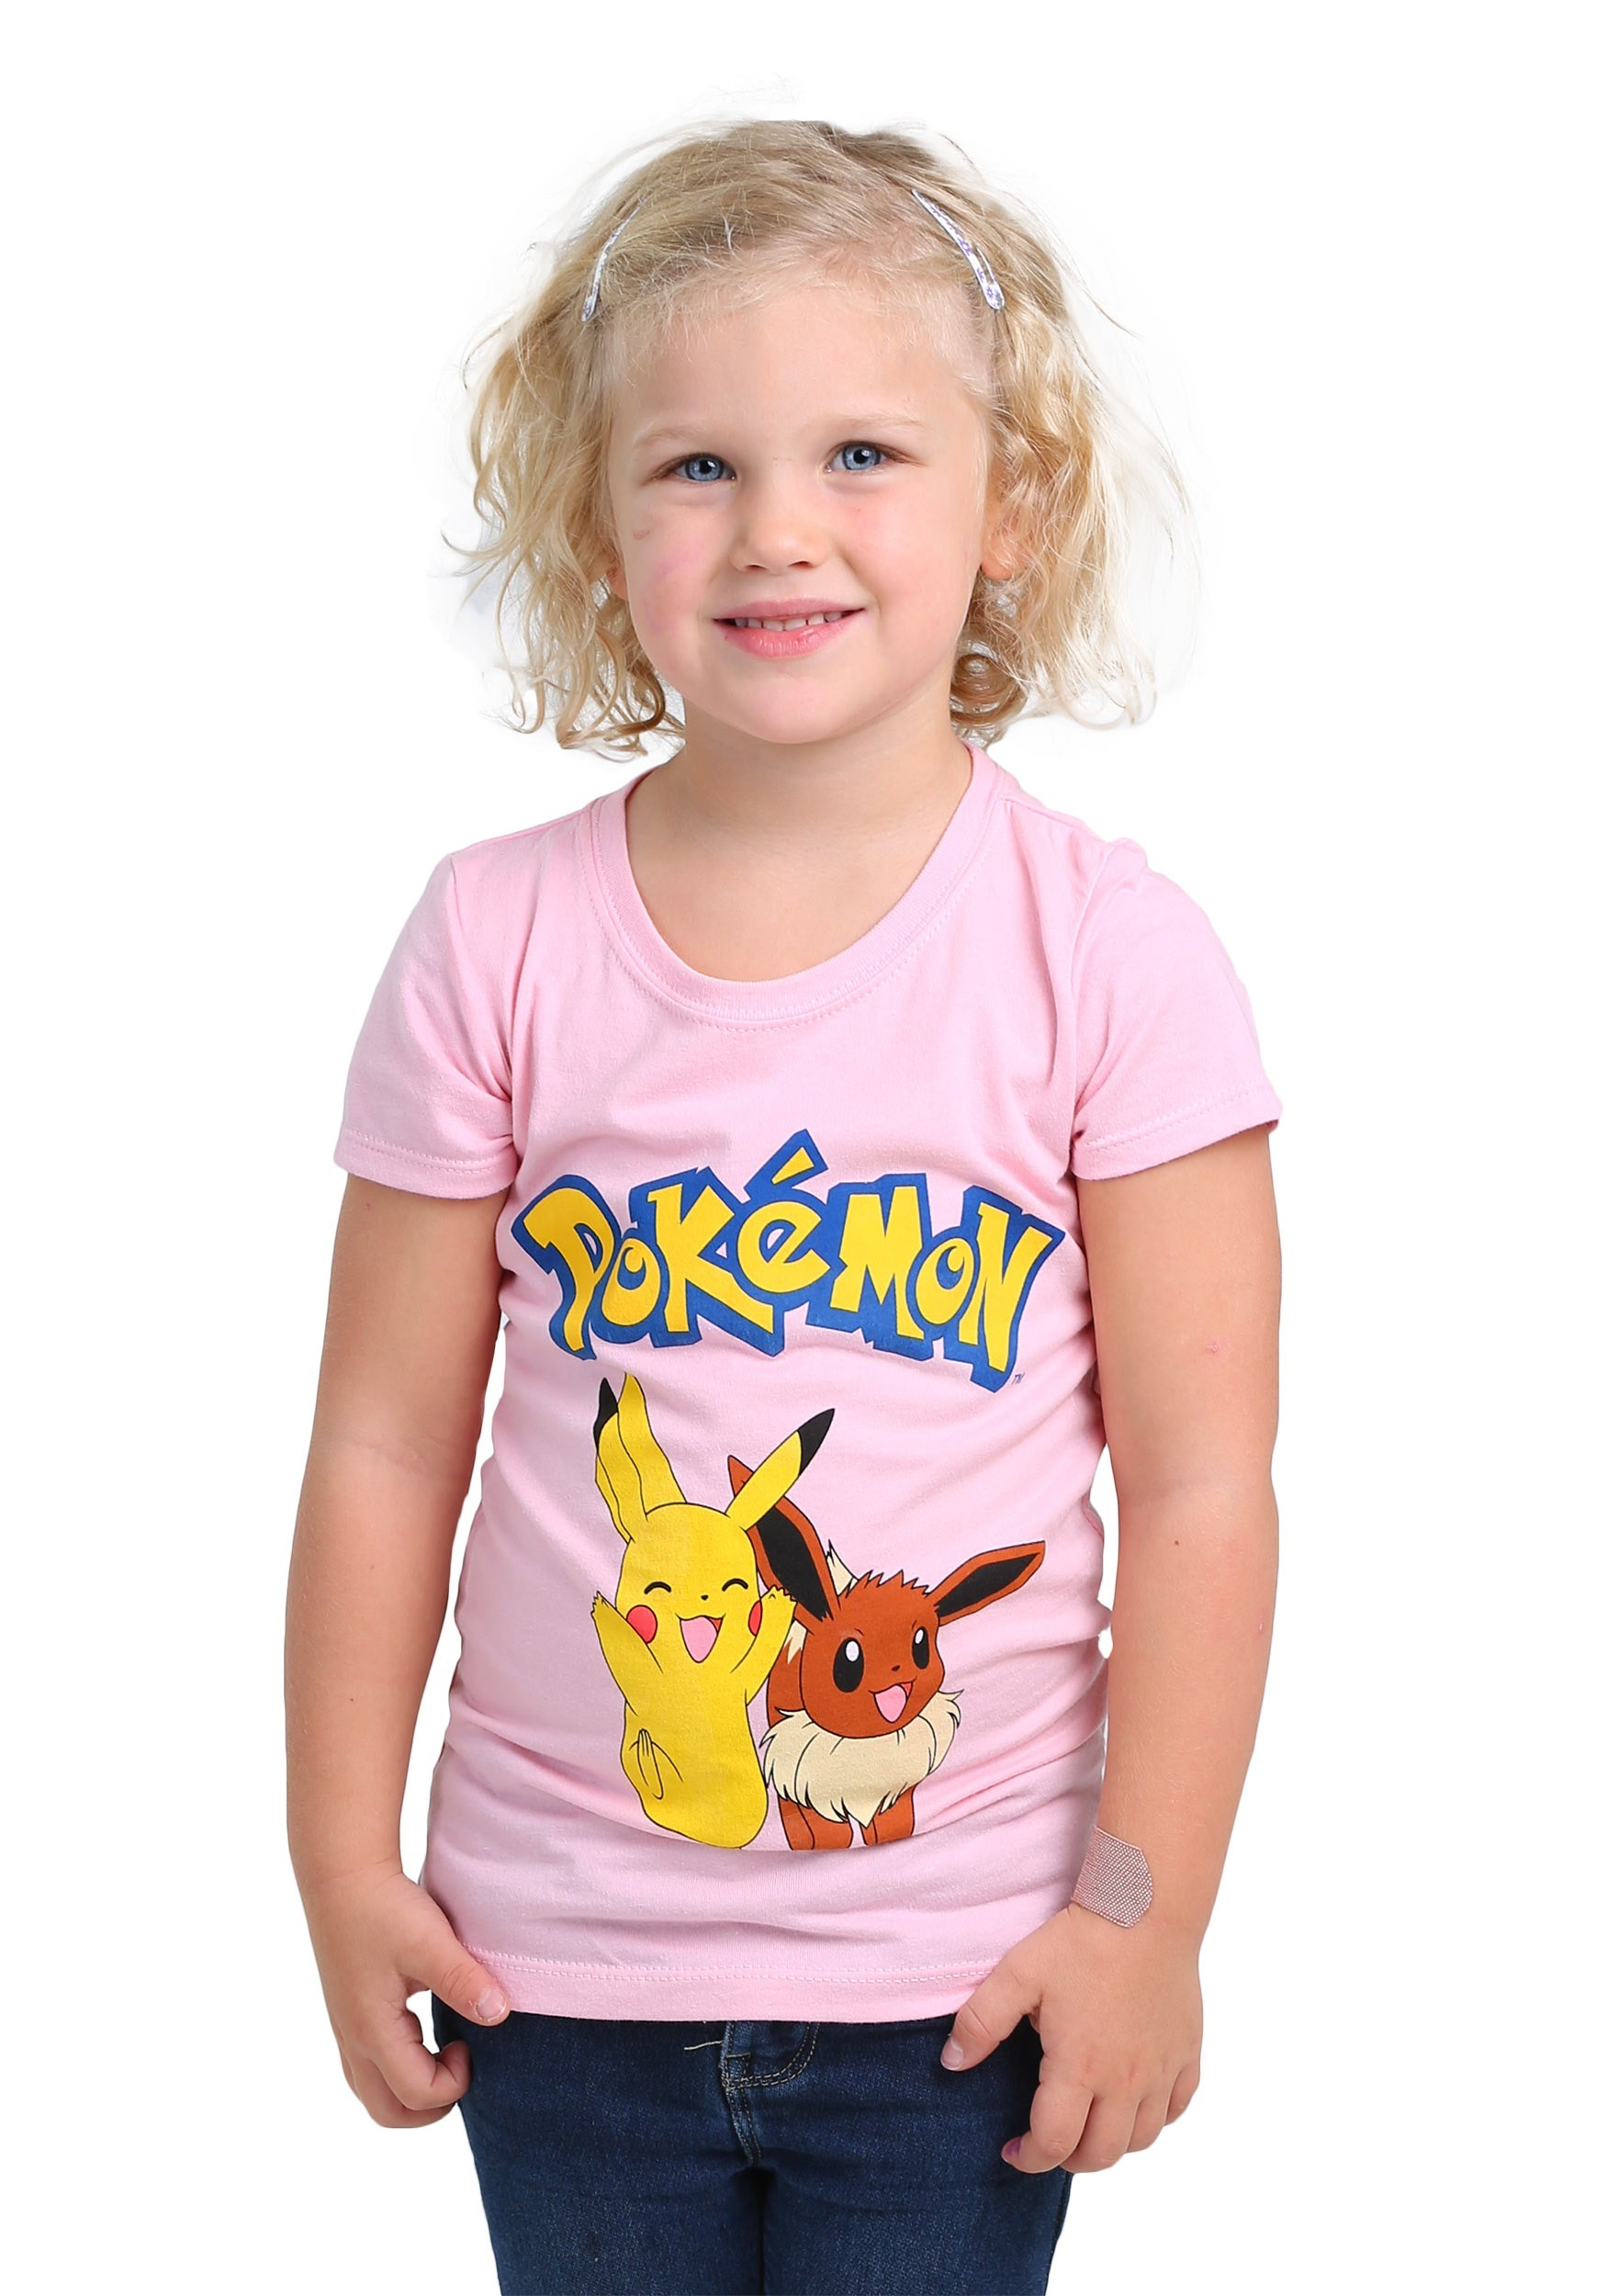 Costume Pikachu Bambino.Pikachu Eevee Girls T Shirt From Pokemon